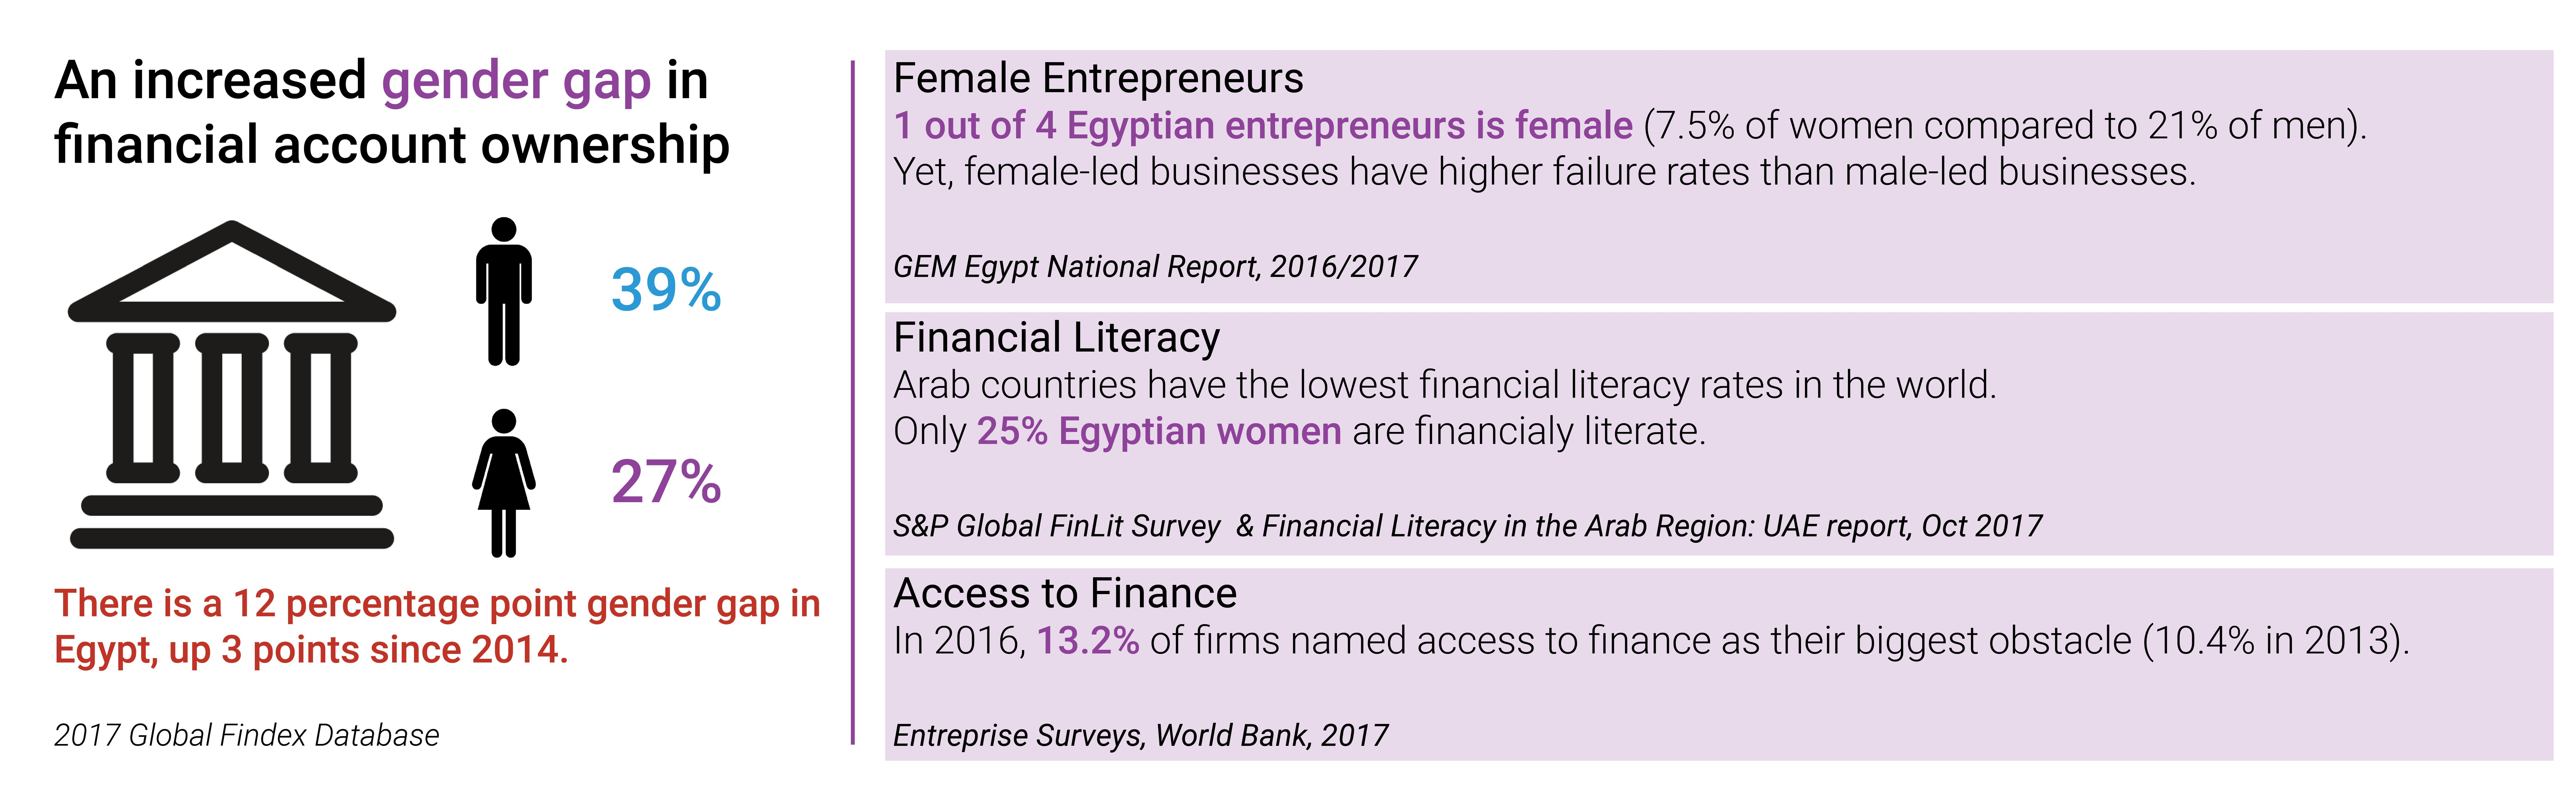 gender gap in financial account ownership in Egypt